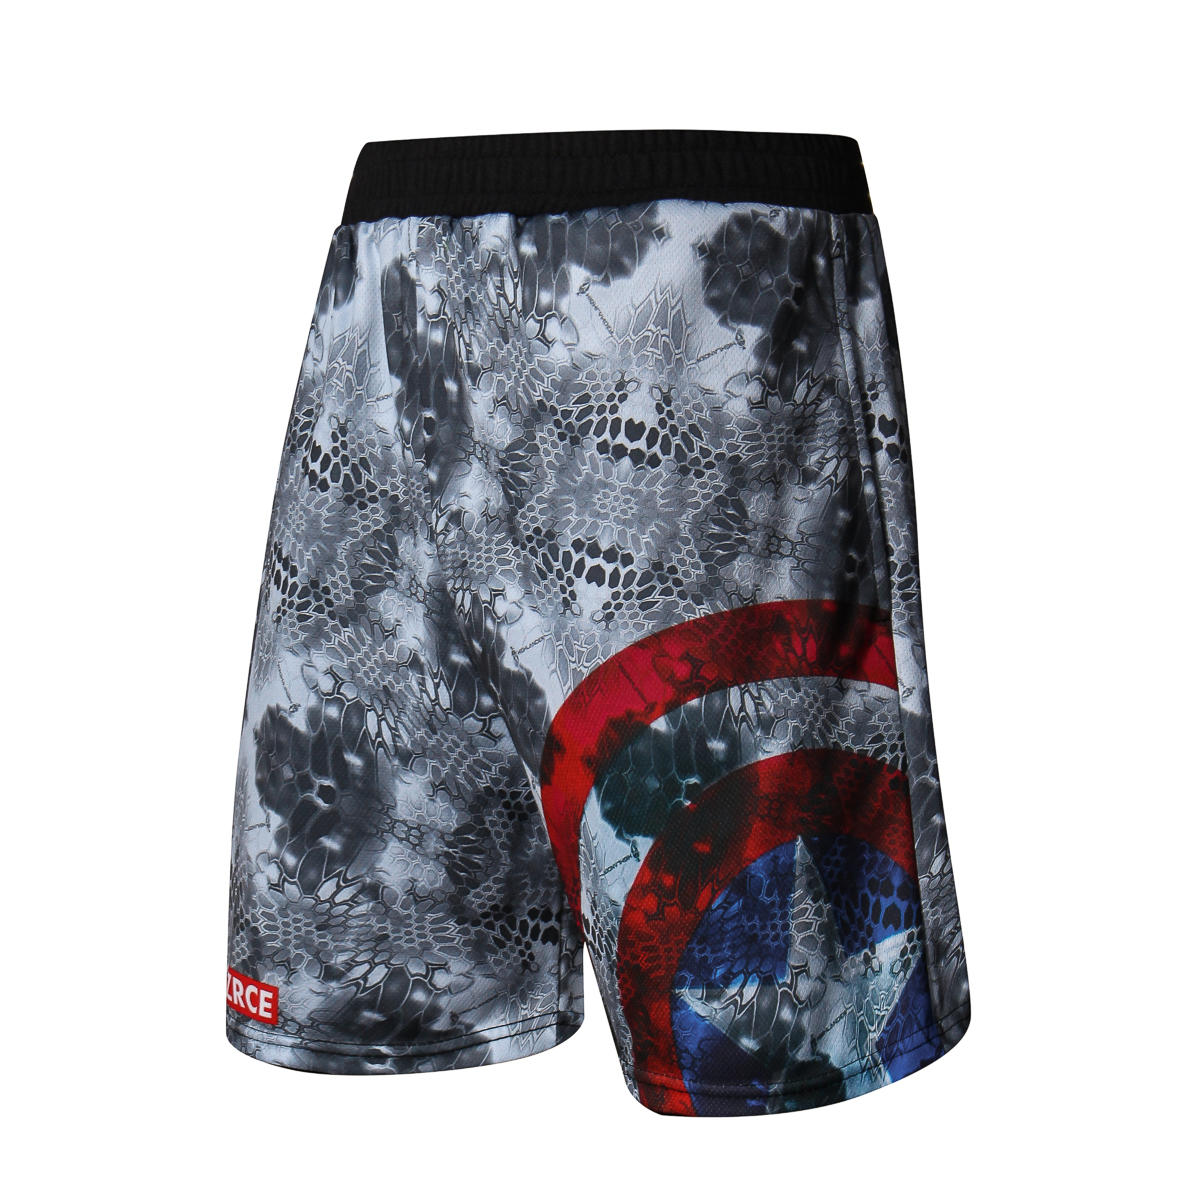 Running Shorts Men Fitness Crossfit Gym Shorts Captain America Sport Shorts Workout Jogging Training Exercise Sweatpants